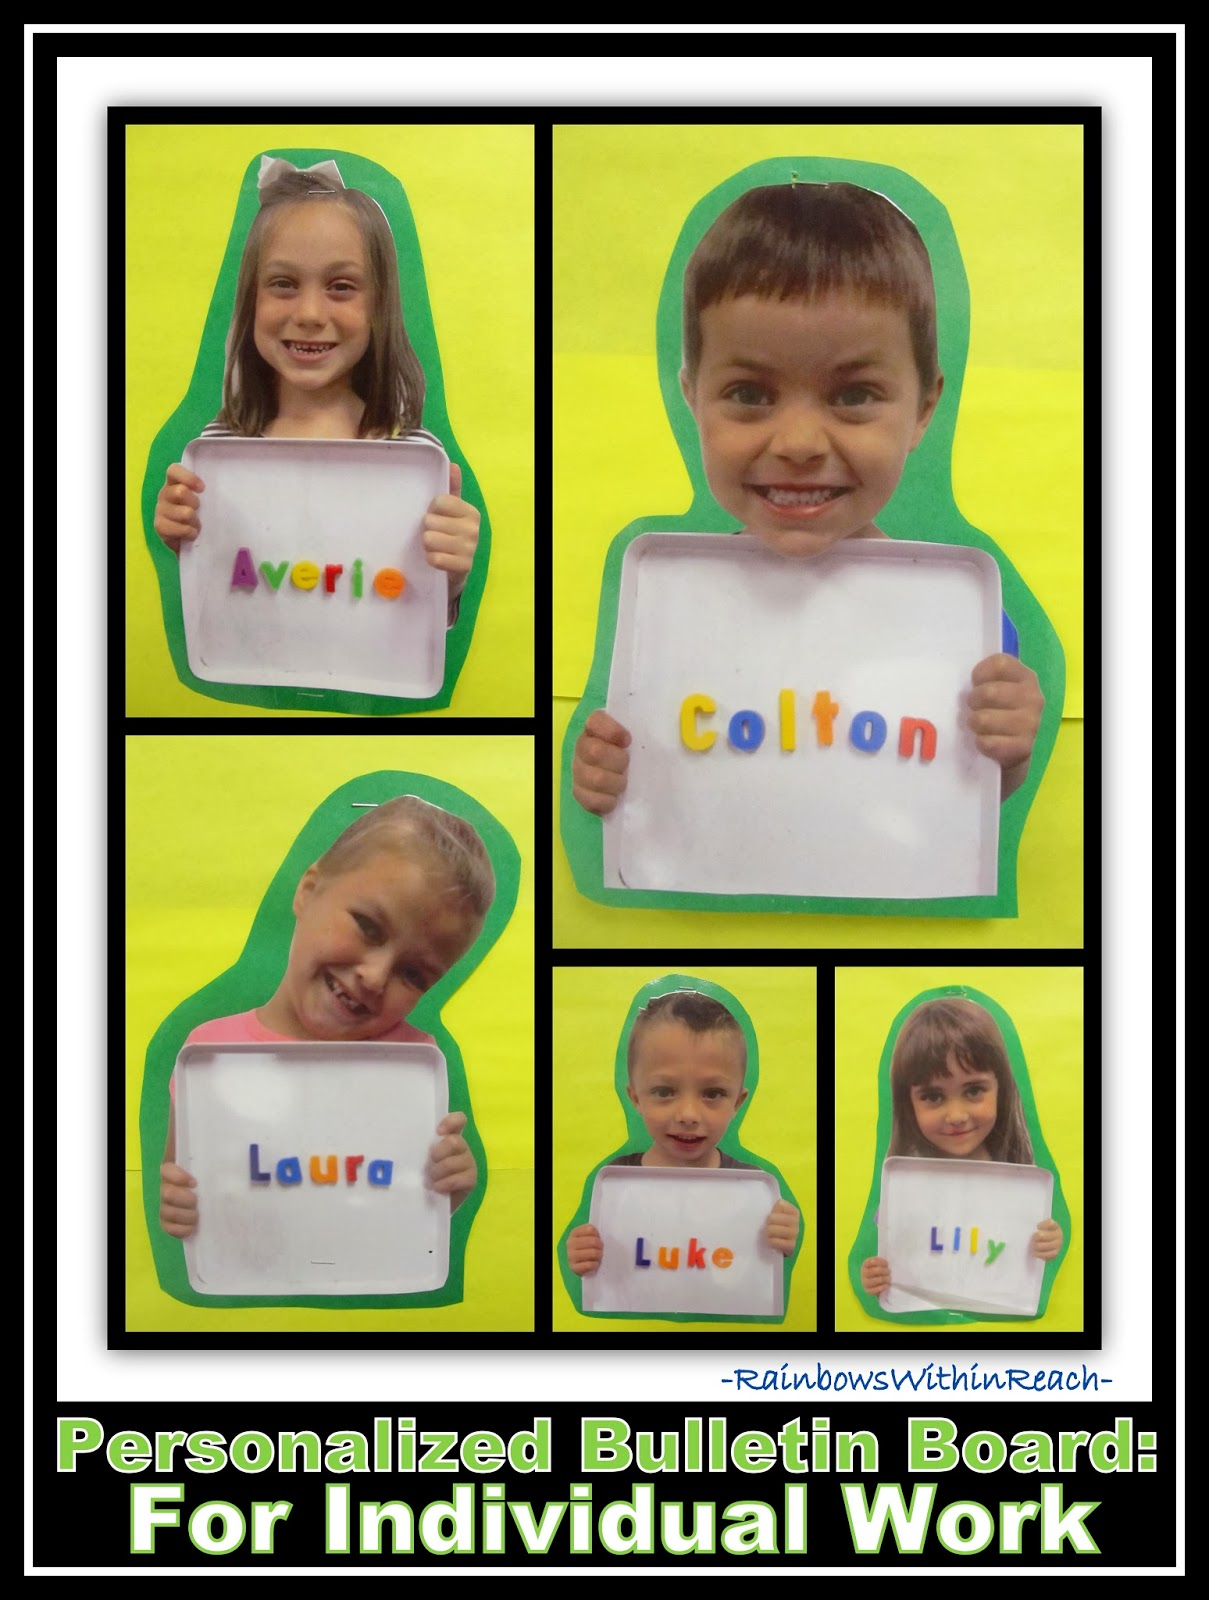 Magnet Letters to Personalize the Bulletin Board with Names at RainbowWithinReach